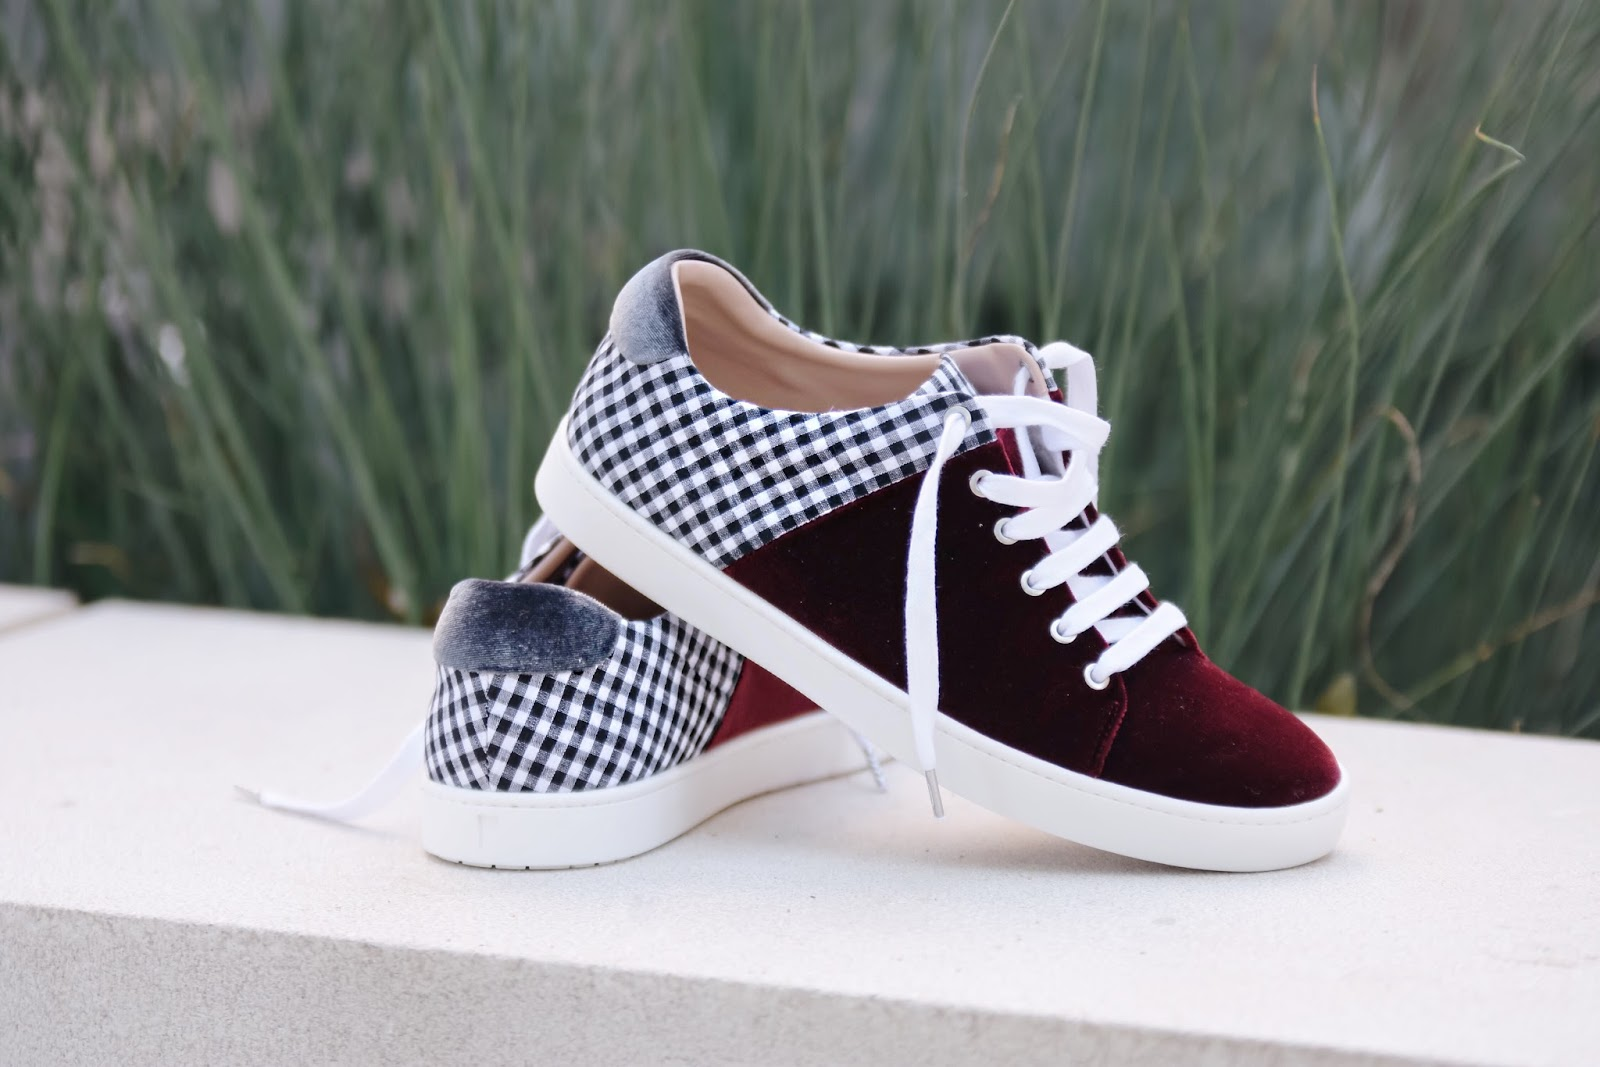 Shoes of prey, sneakers, customizable shoes, vichy print, gingham, velvet, sneakers for girls, fall outfits, sneakers for girls